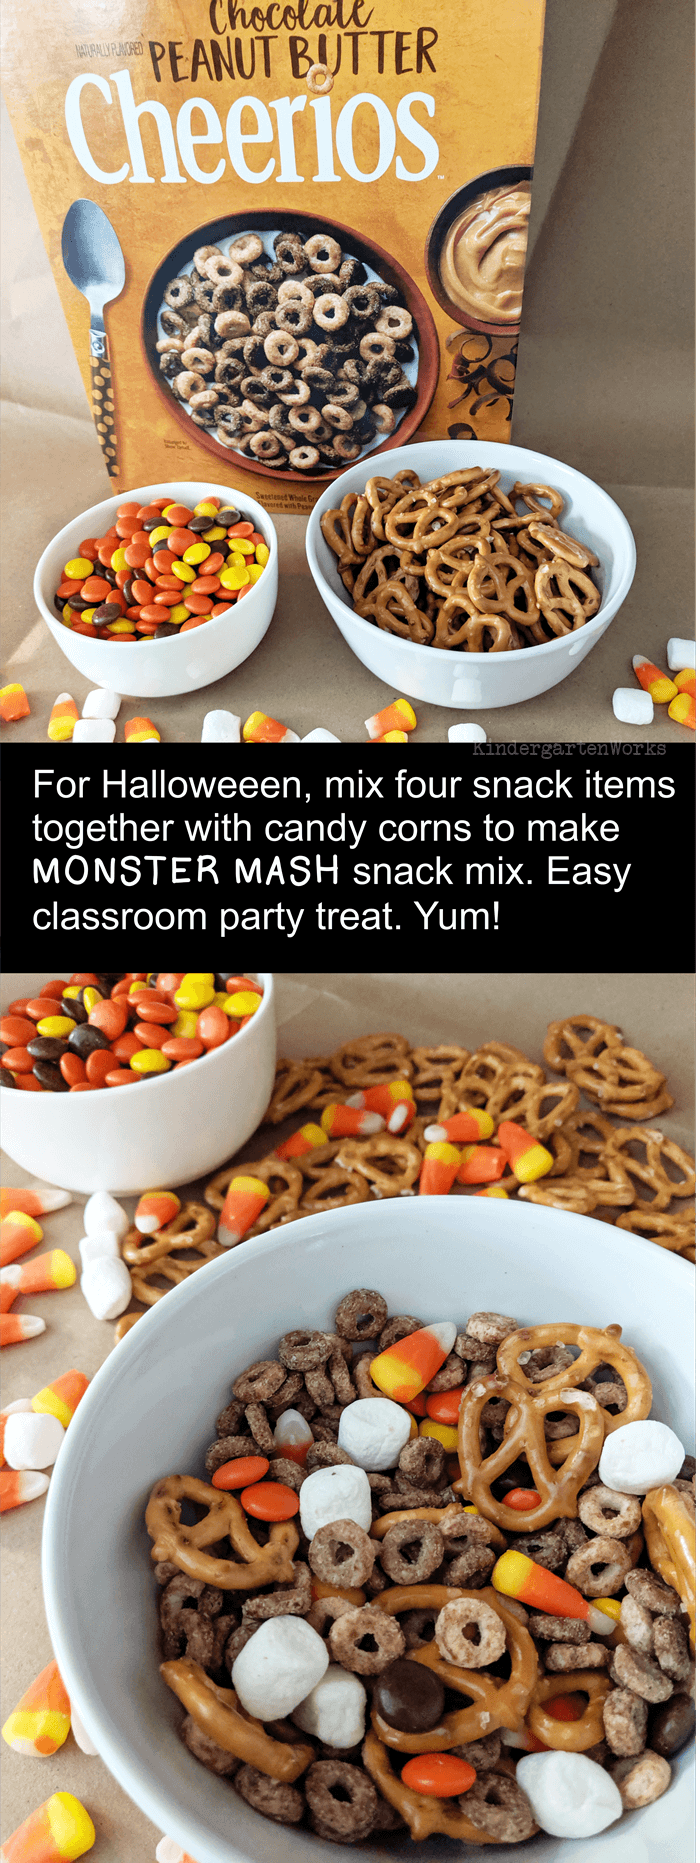 Think of a basic snack mix or trail mix recipe and add in a Halloween flavor like candy corns. Just remember to balance the sweet and salty factor so it's tasty! Pick 5 items from this list to make your monster munch snack: Cereal, Popcorn, M&M's Reeses Pieces or Chocolate chips, Pretzels, Candy Corn, Mini-marshmallows, Raisins - Students will count or scoop (based on your instructions) the items into a ziploc bag and shake it up before eating. Editable recipe card included to make it a ...